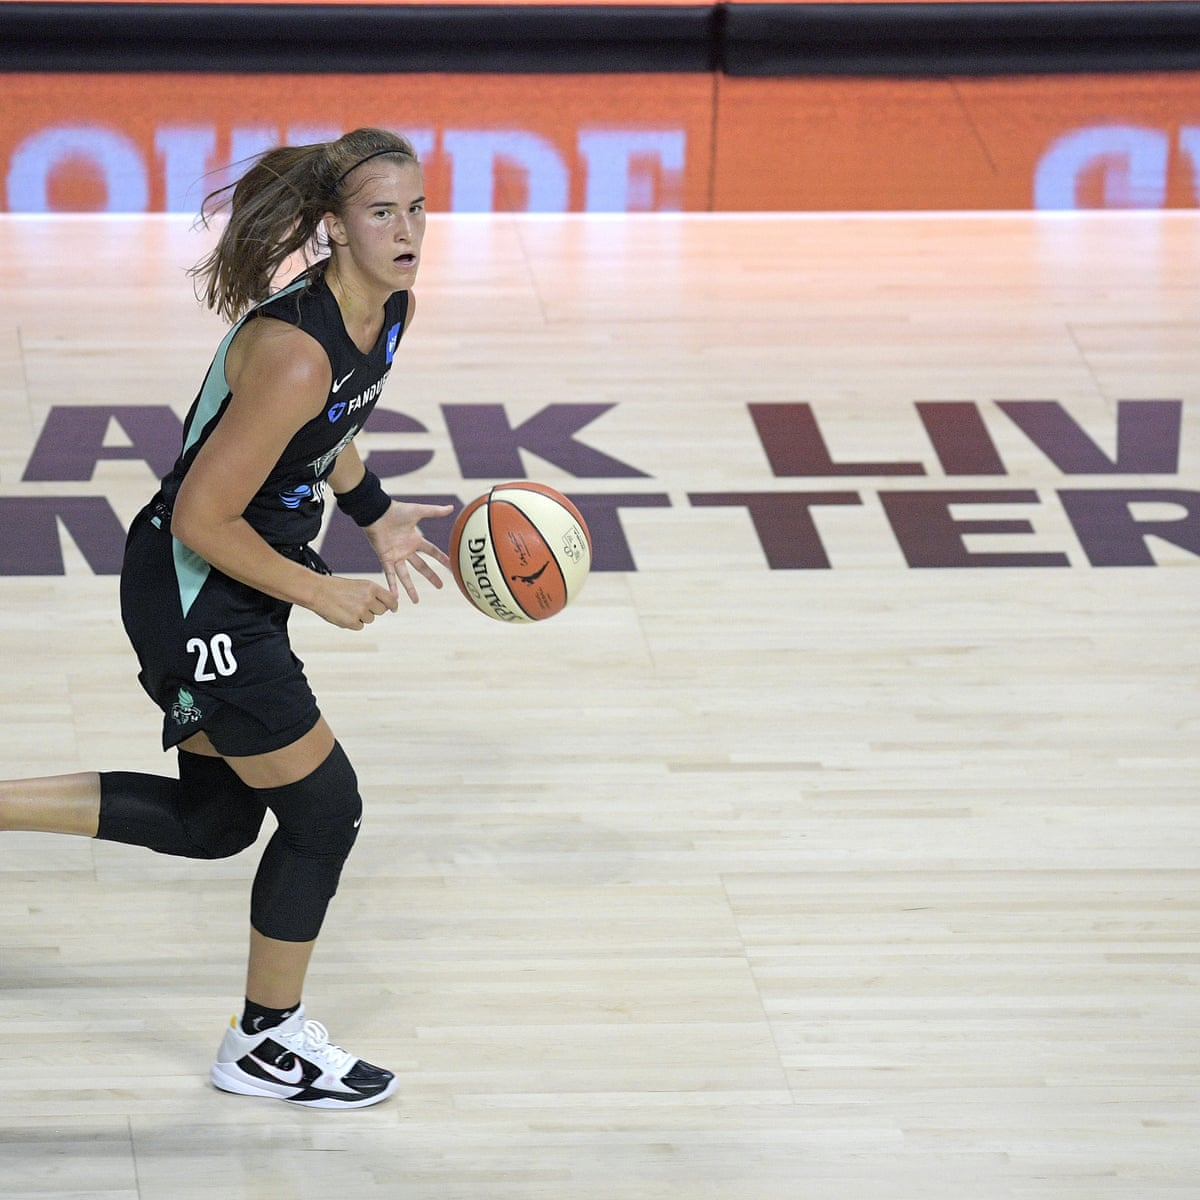 Wnba Players Walk Off Court During National Anthem Before Season Opener Wnba The Guardian